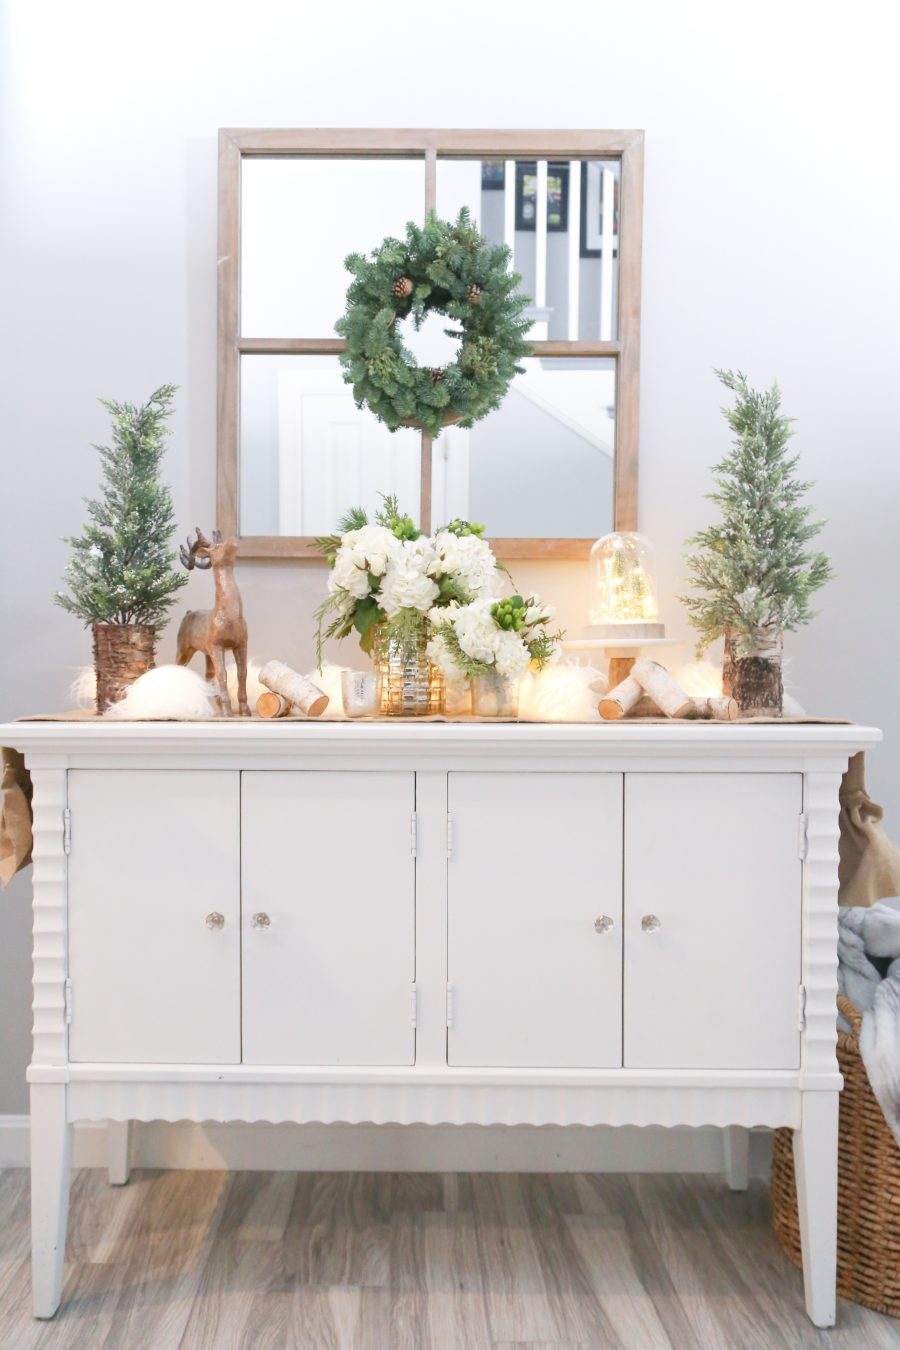 Black Friday and Cyber Monday Sales from Wayfair White console table with pine trees and reindeer and white hydrangea